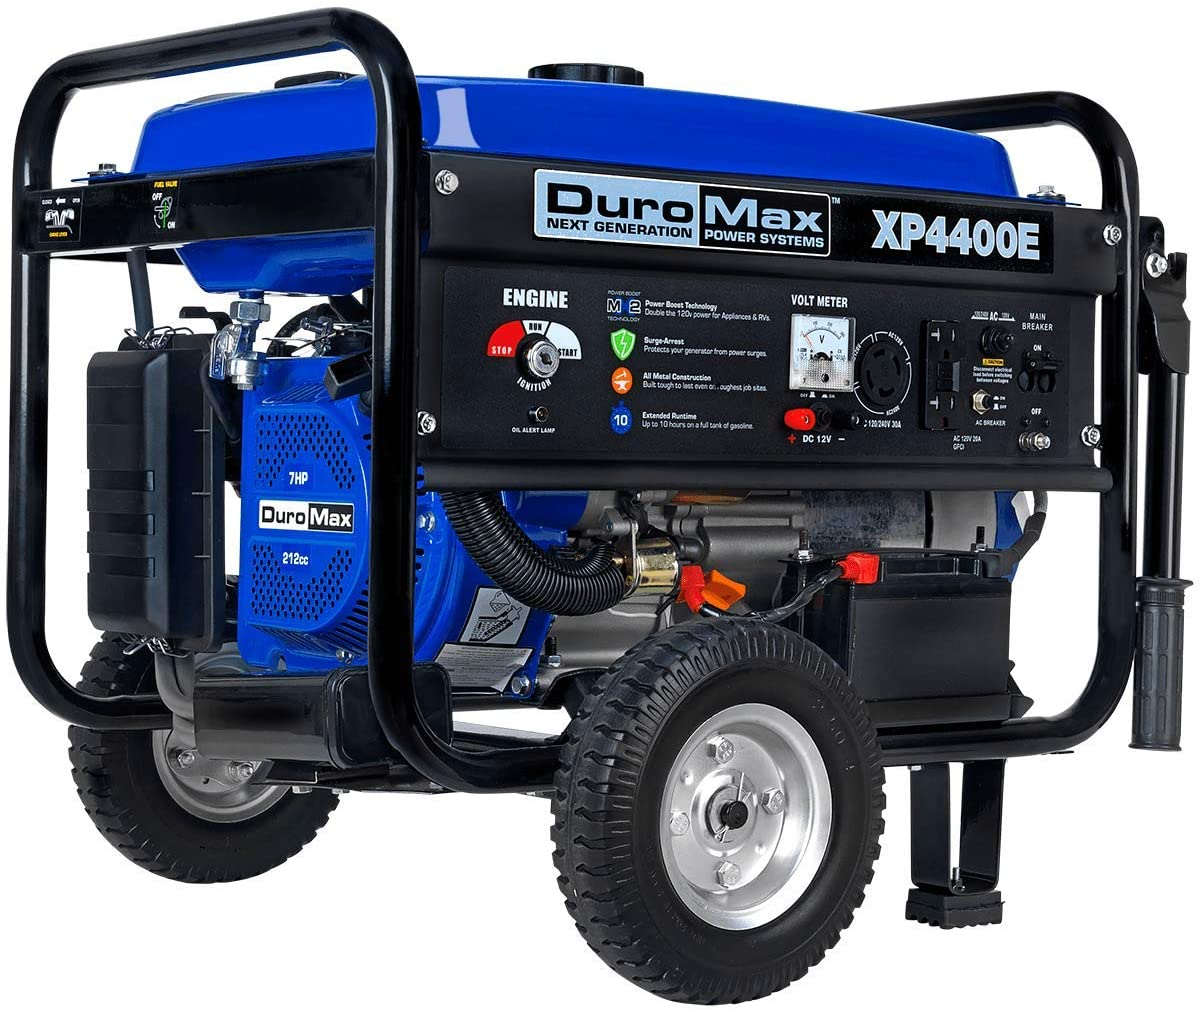 Best Home Generators For Power Outages 2020 (Top 10) 11